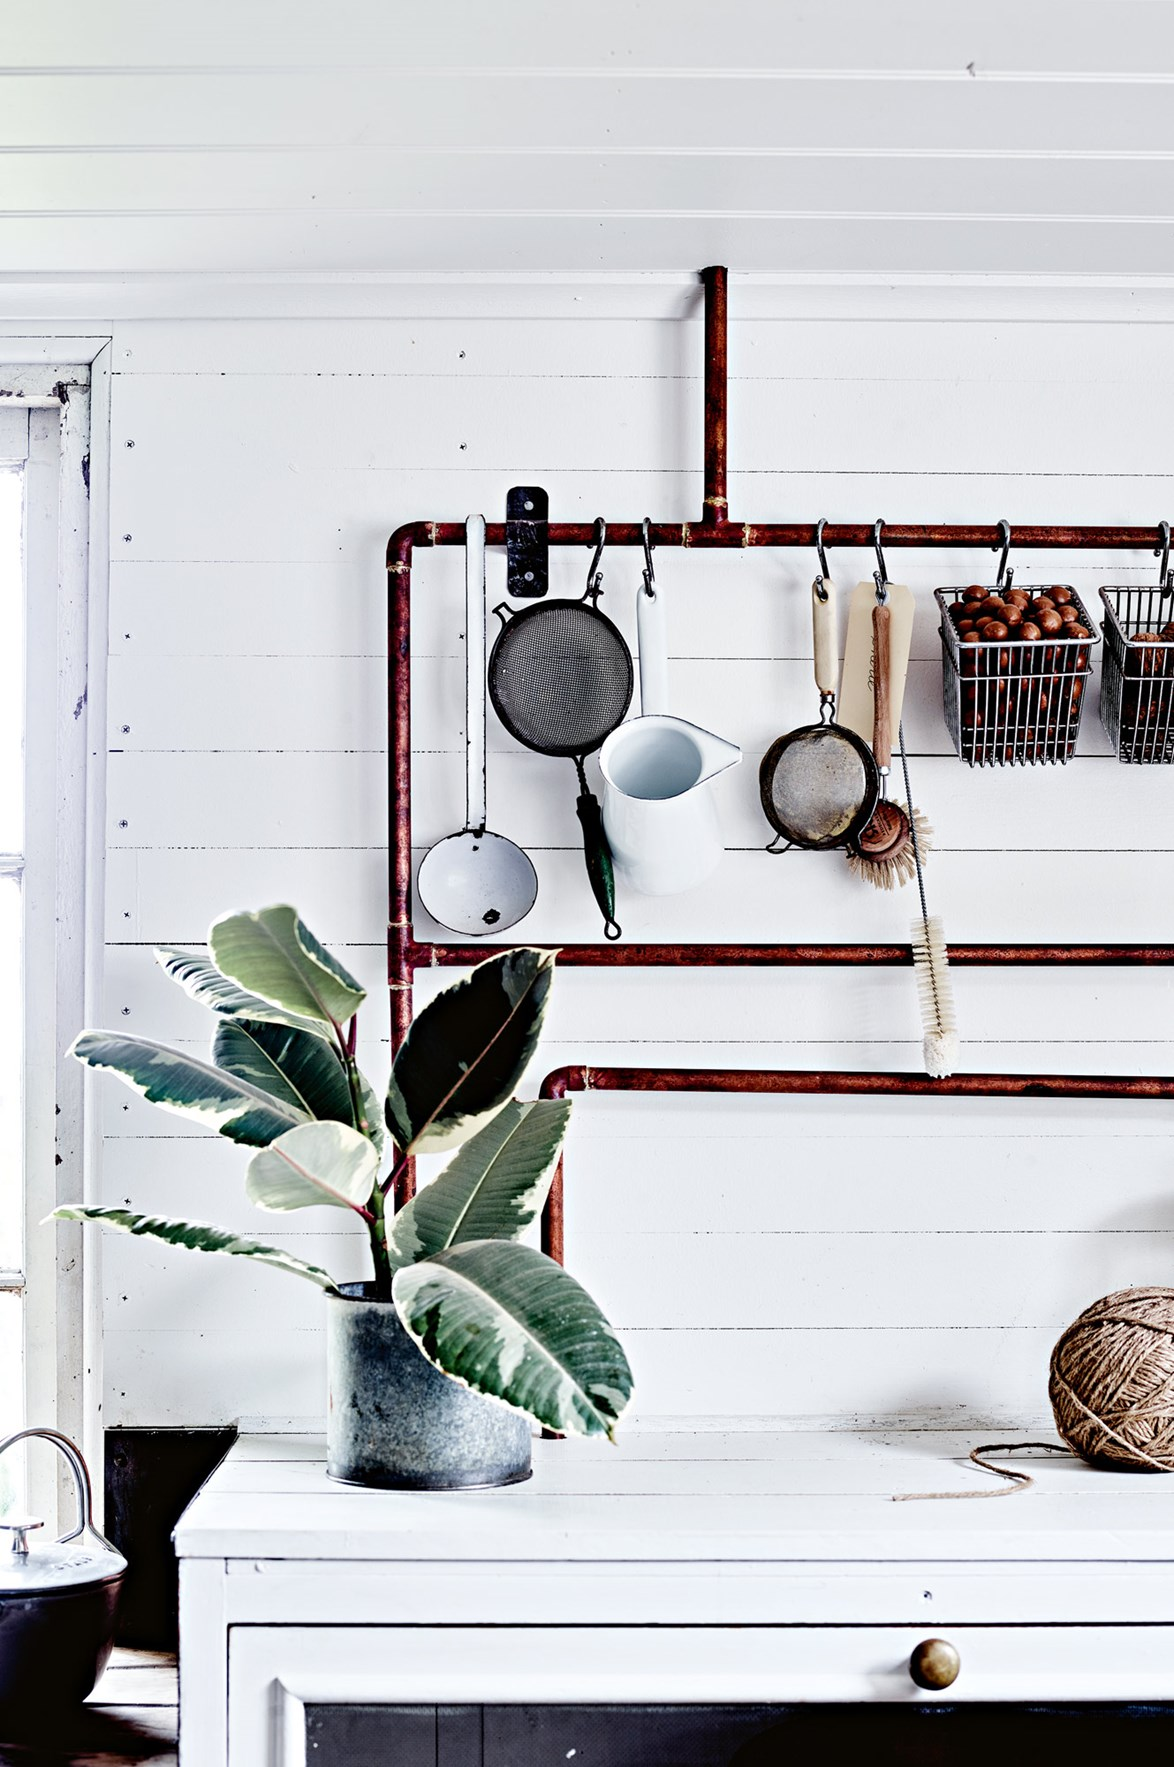 "<p>**FIND NEW WAYS TO USE OLD THINGS**<p> <P>Finding new ways to use old things can include repurposing items, or simply embracing the quirky period details of your home. Here, a set of exposed copper pipes have been transformed into an eye-catching rack for the display of pots, pans and other kitchen utensils at this [rectory turned family home](https://www.homestolove.com.au/former-barossa-valley-rectory-blessed-with-new-life-13942|target=""_blank"") in the Barossa Valley.<p> <P>*Photo: Mark Roper / Styling: Lee Blaylock*<p>"